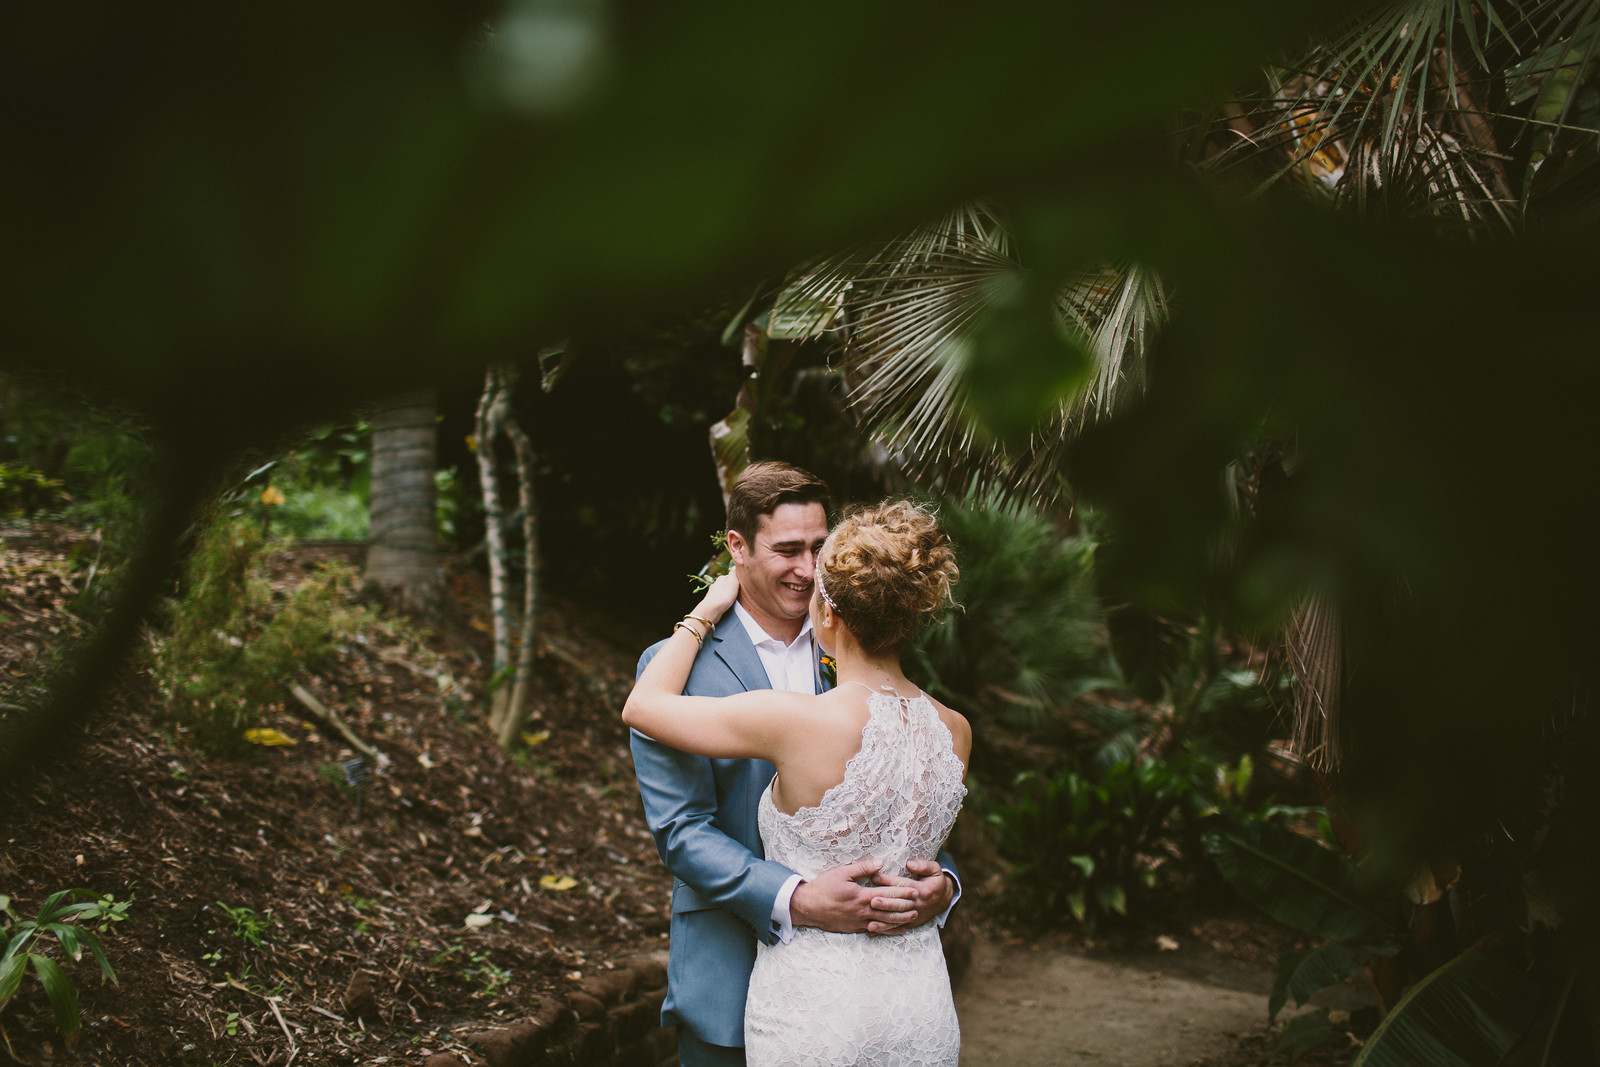 sandiego-botanic-garden-wedding-7.jpg